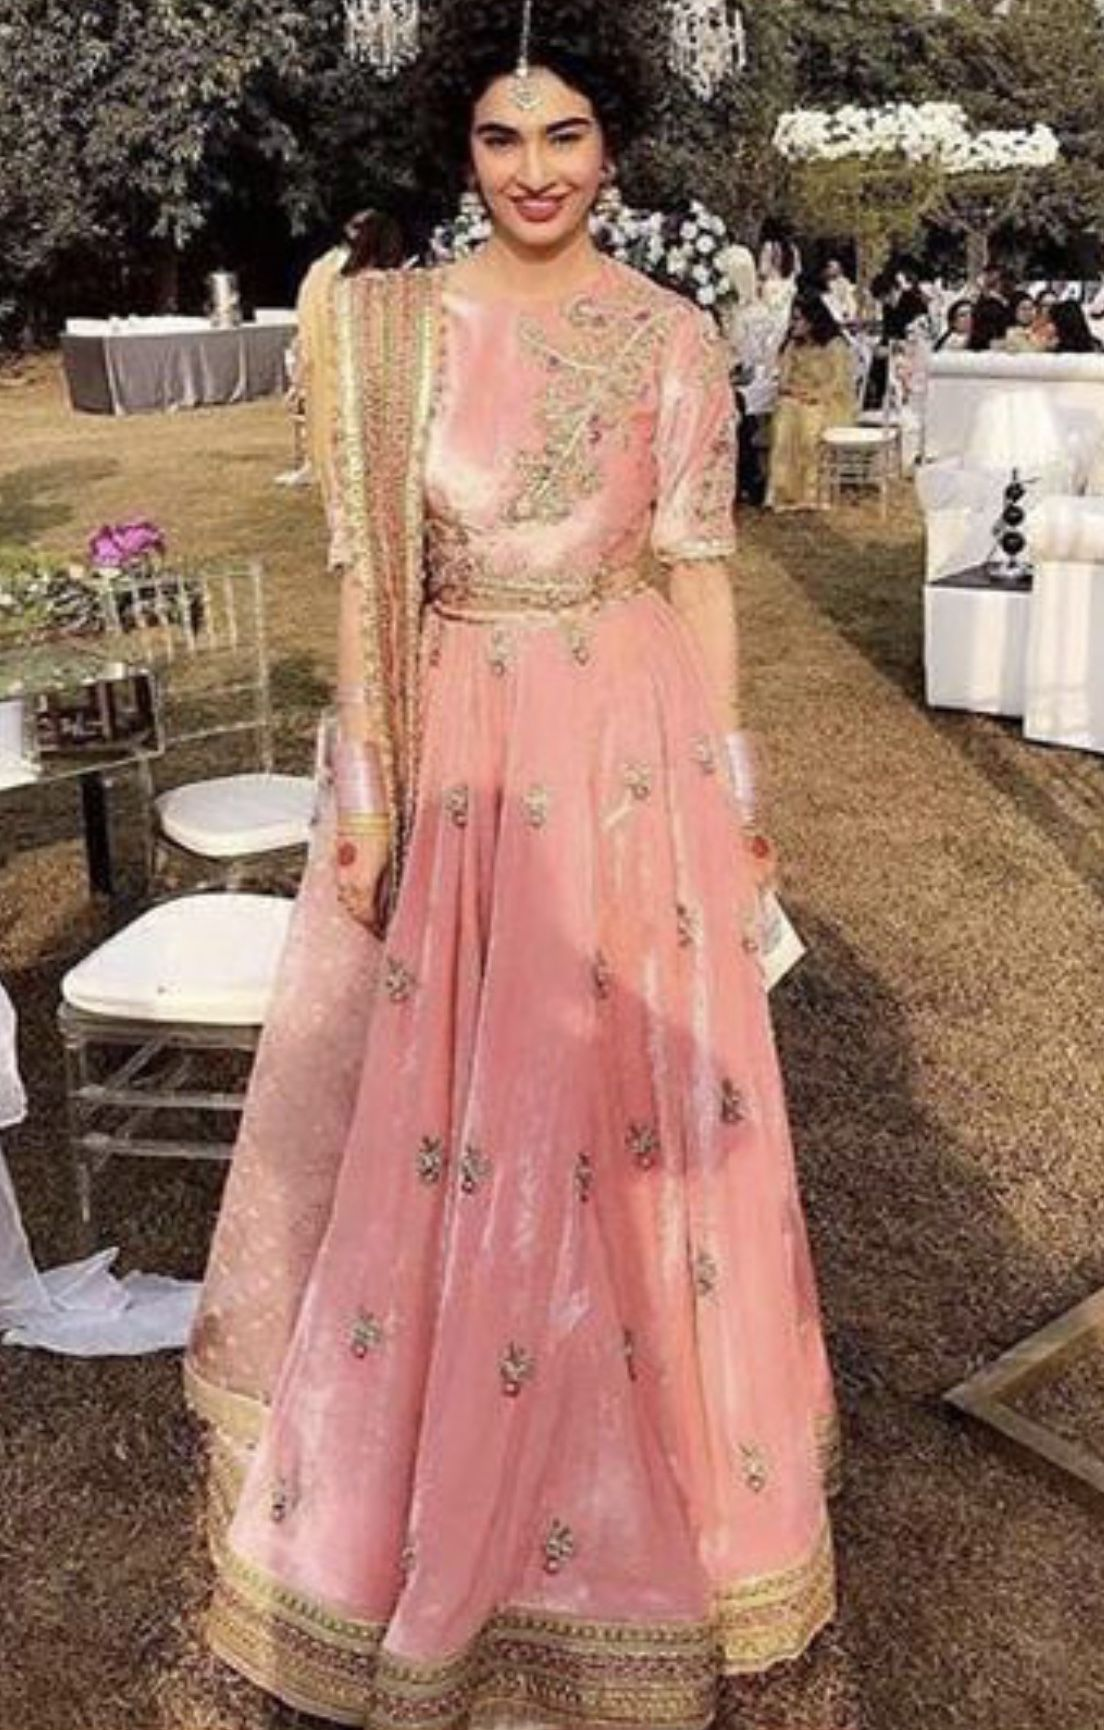 Pin by Haseeb Nasir on Wedding clothes | Pinterest | Celebrity pics ...